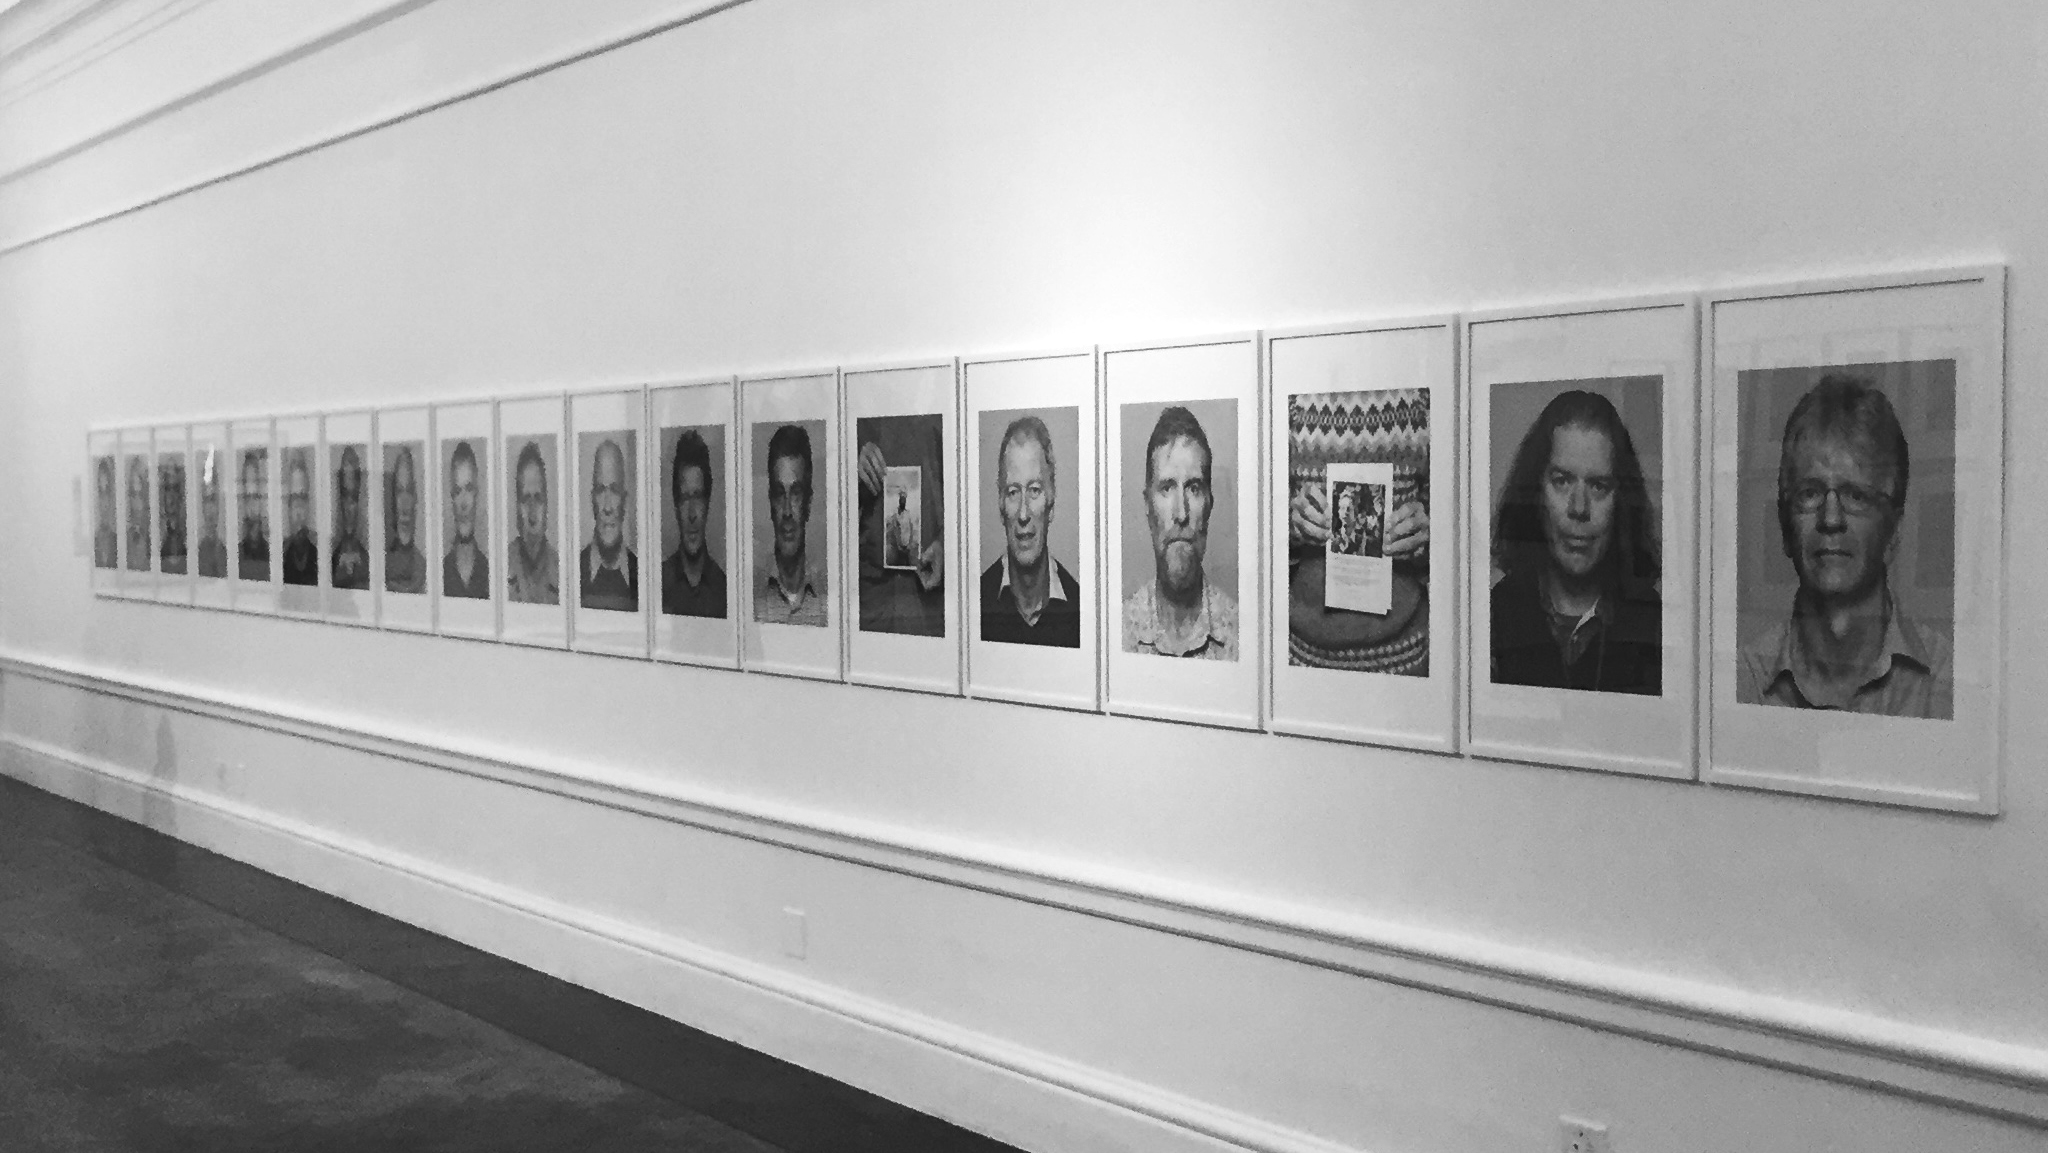 The Objectors on Exhibition at the South African National Gallery in Cape Town.